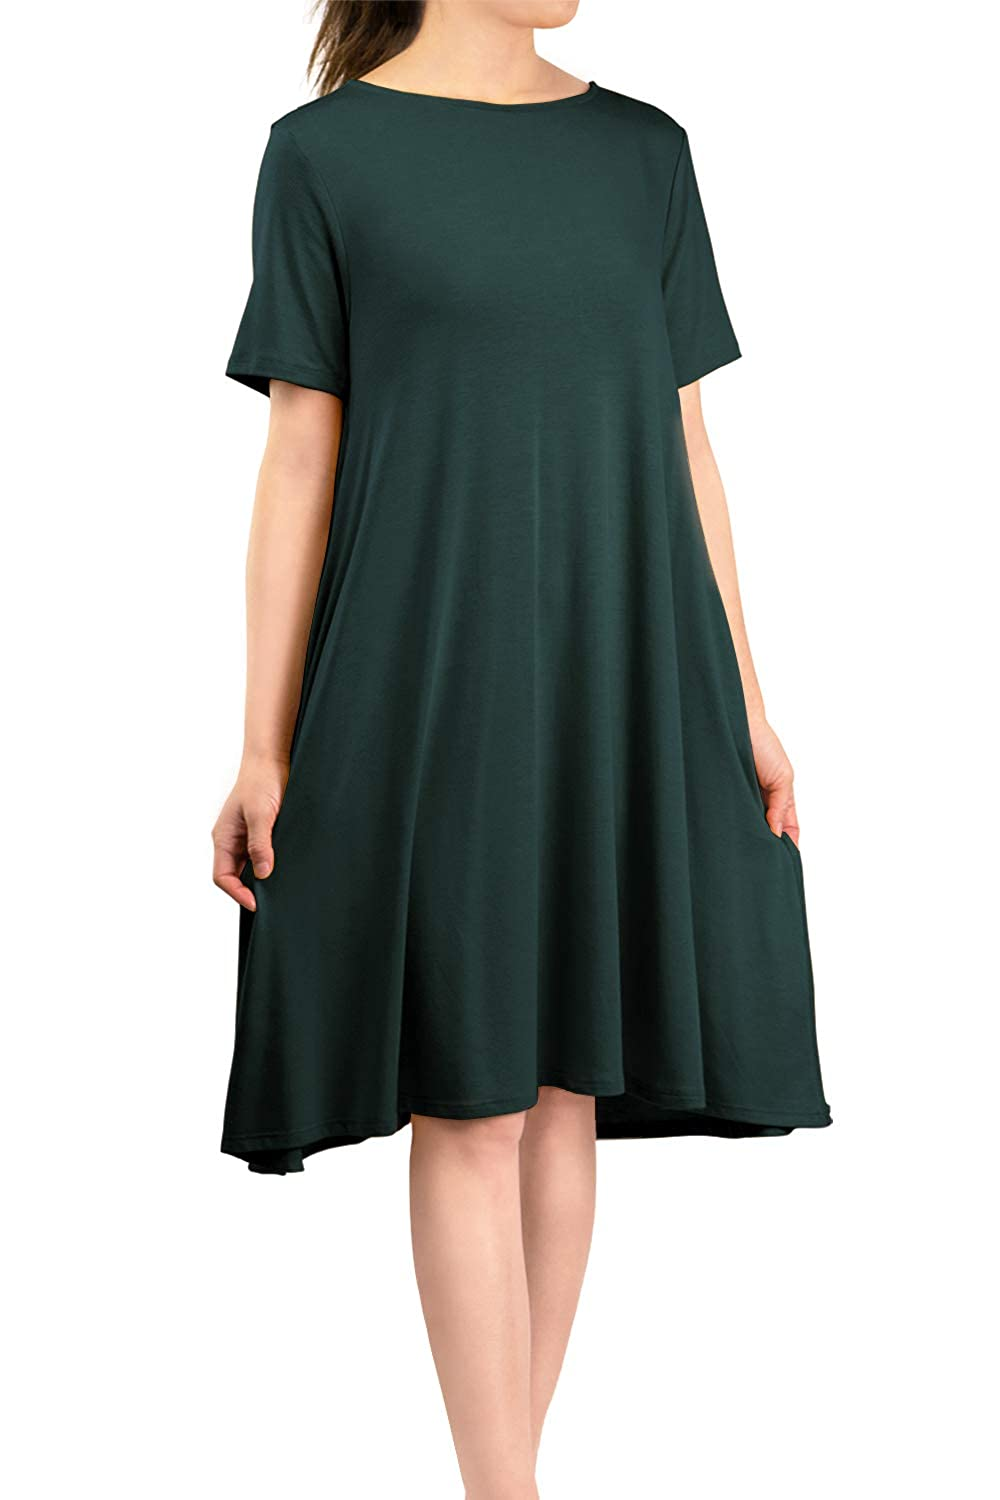 Hunter Green Malibu Days Women's Side Pockets Short Sleeve Casual Basic Loose Plain Solid Flared T Shirt Midi Dress